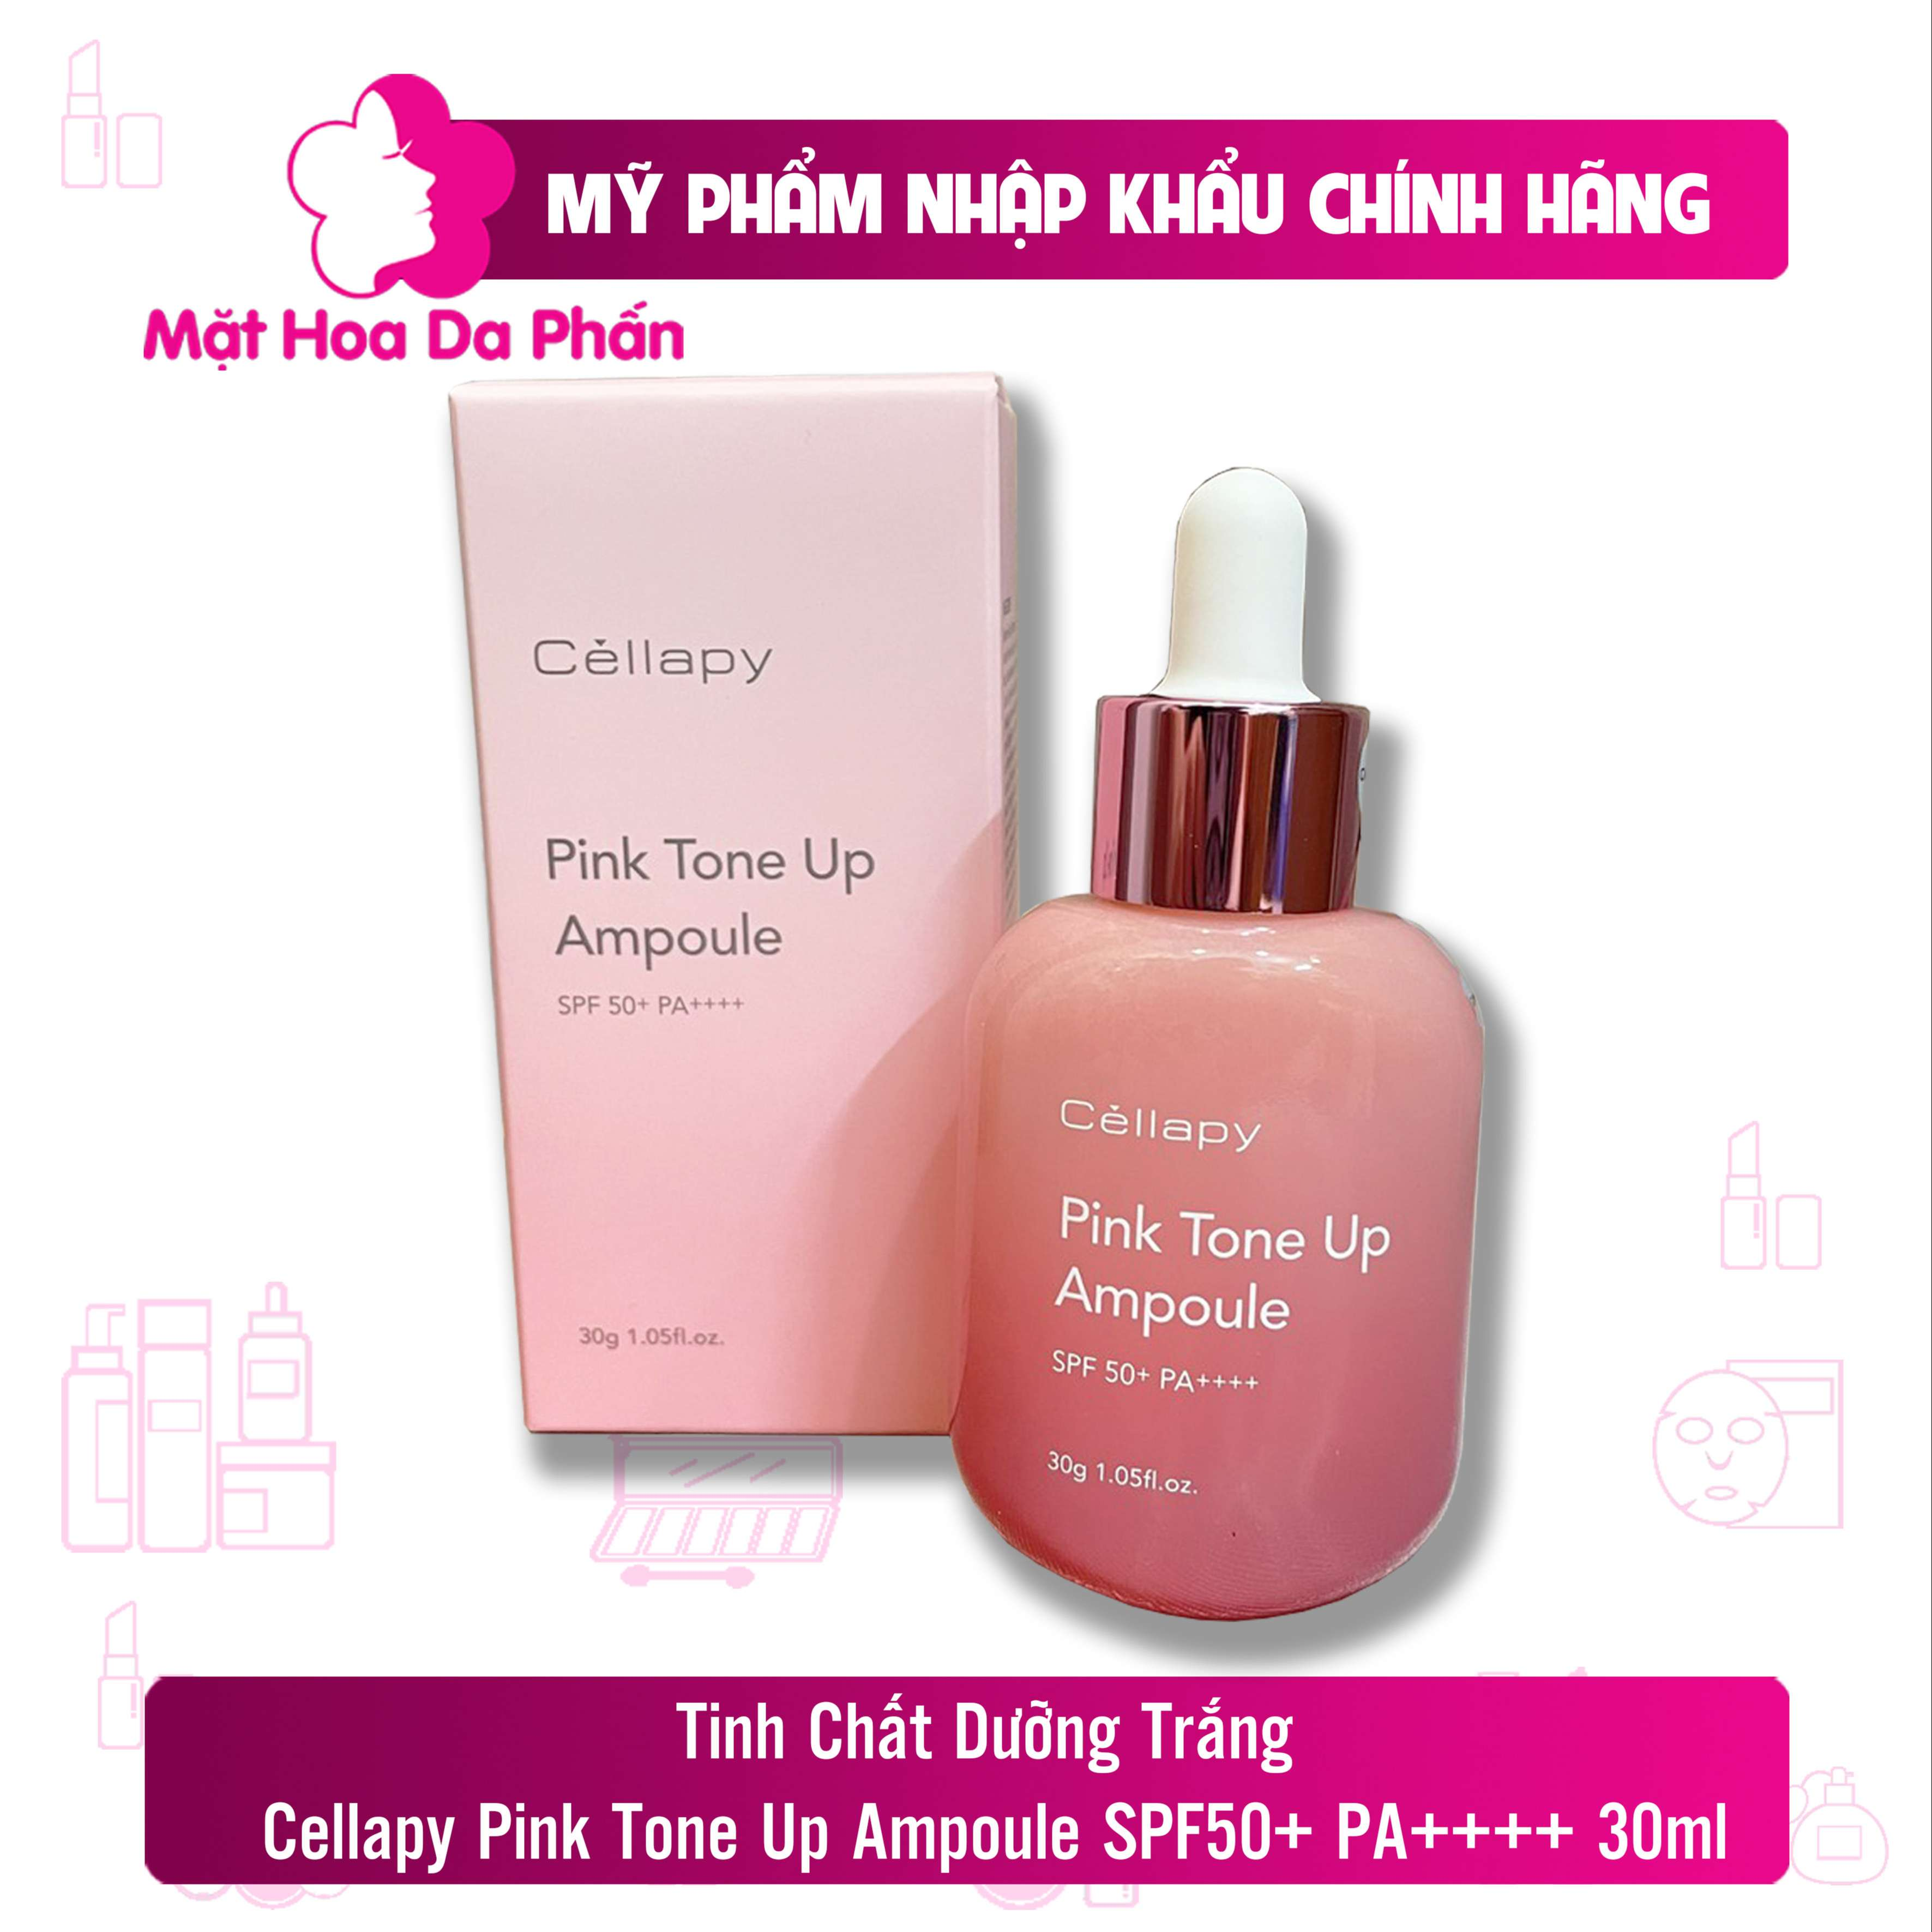 Tinh Chất Dưỡng Trắng Cellapy Pink Tone Up Ampoule SPF 50+ 35 PA+++30ml